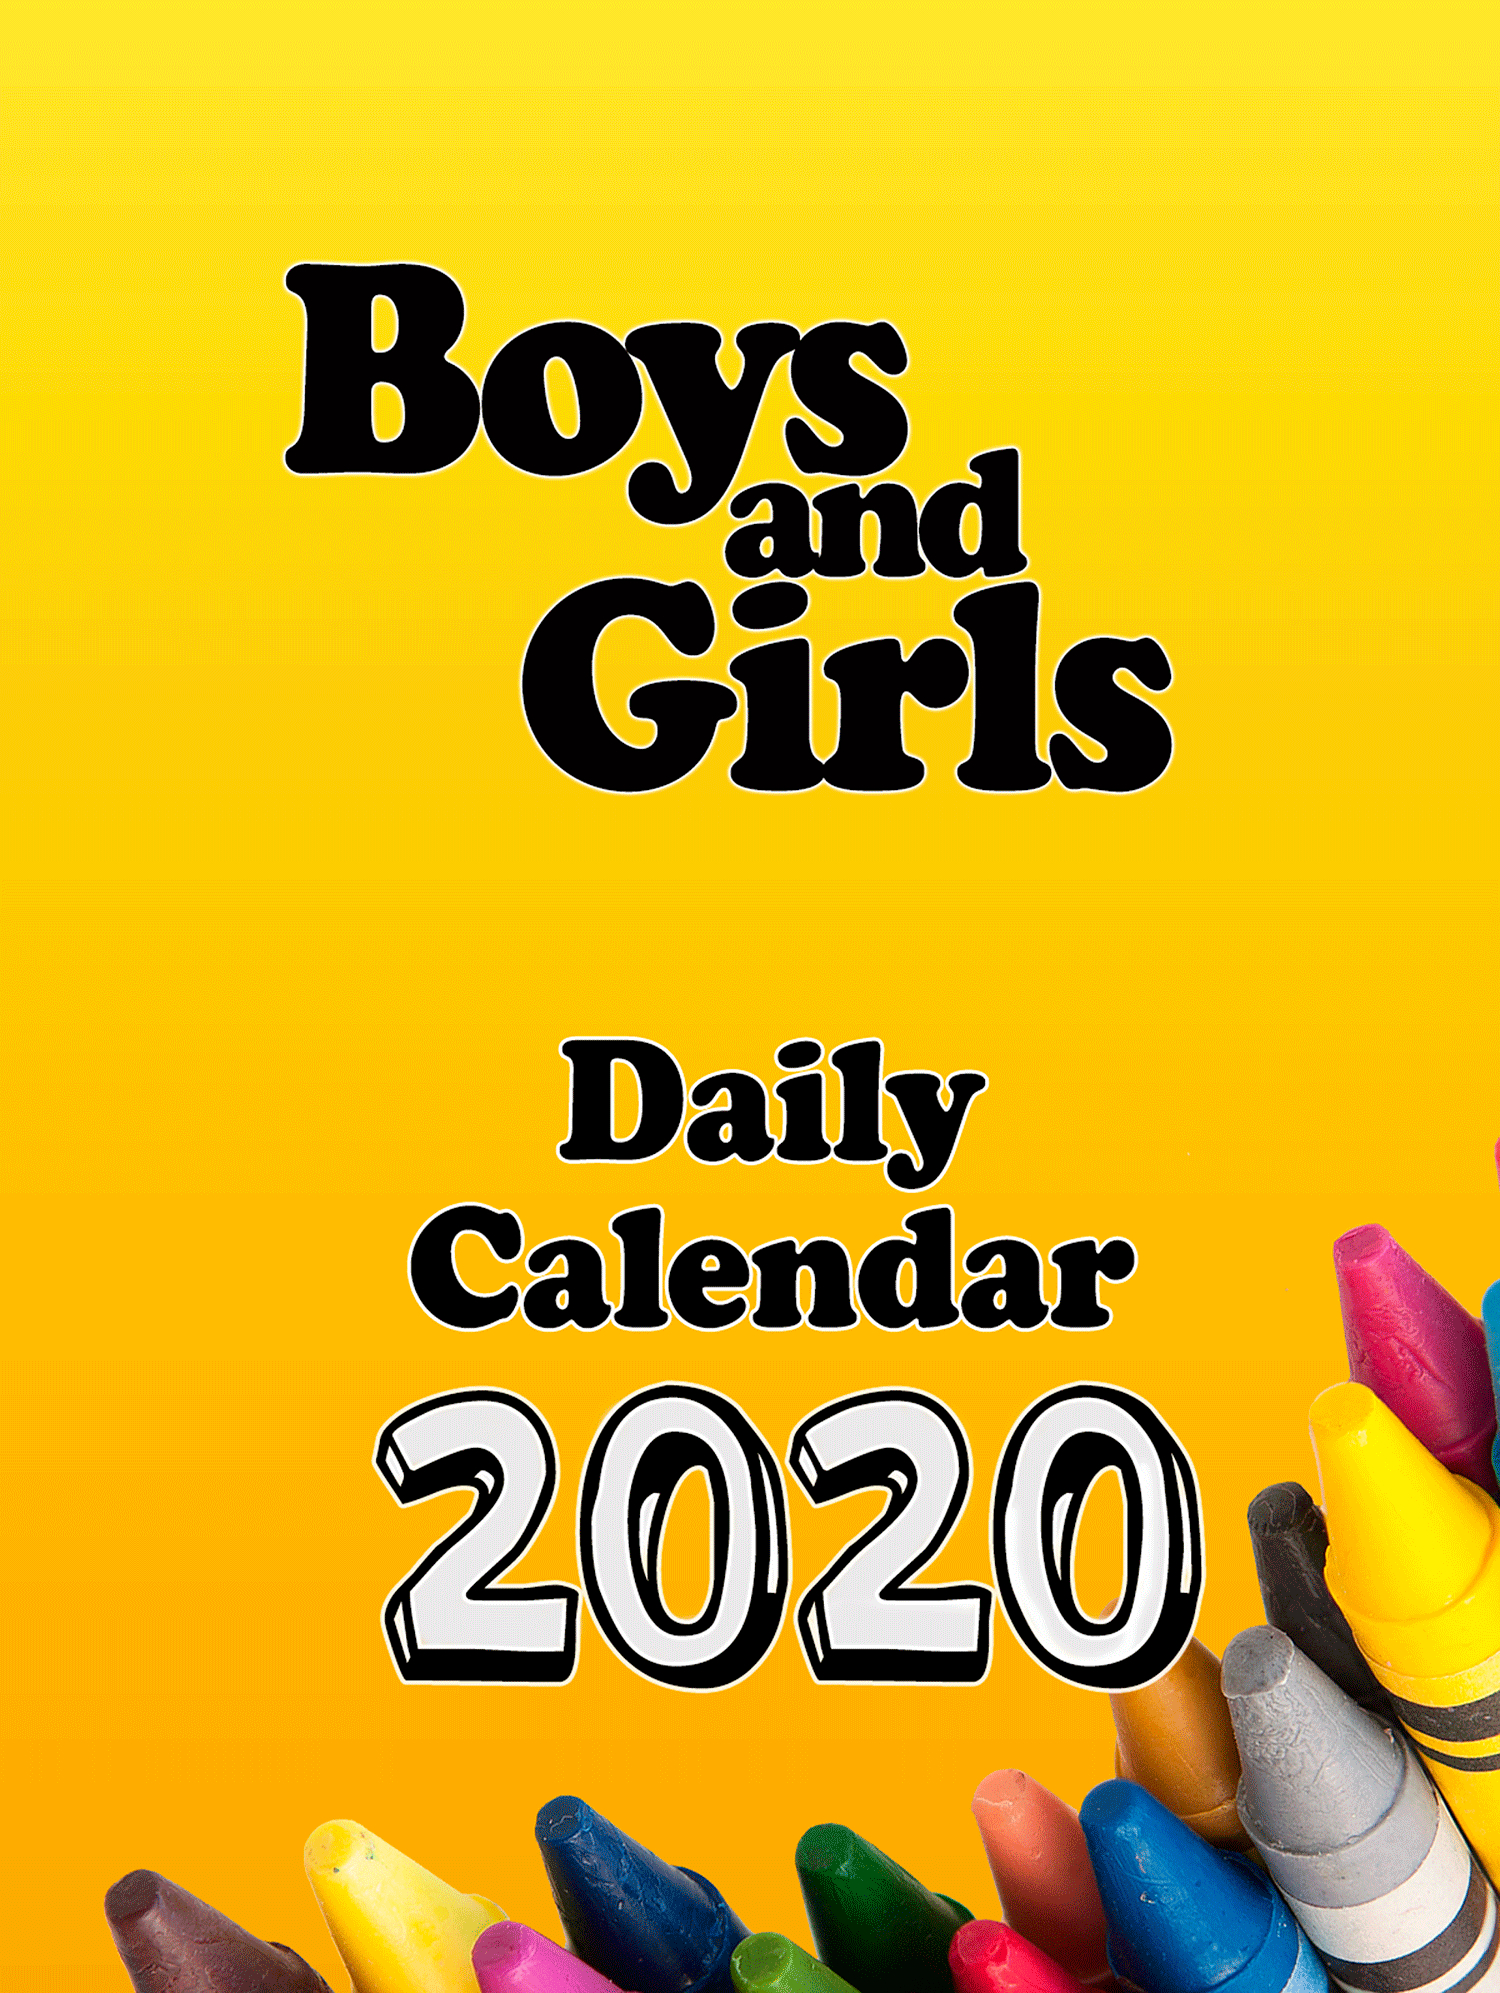 Boys And Girls Daily Calendar Block Only, Without Back, Christian